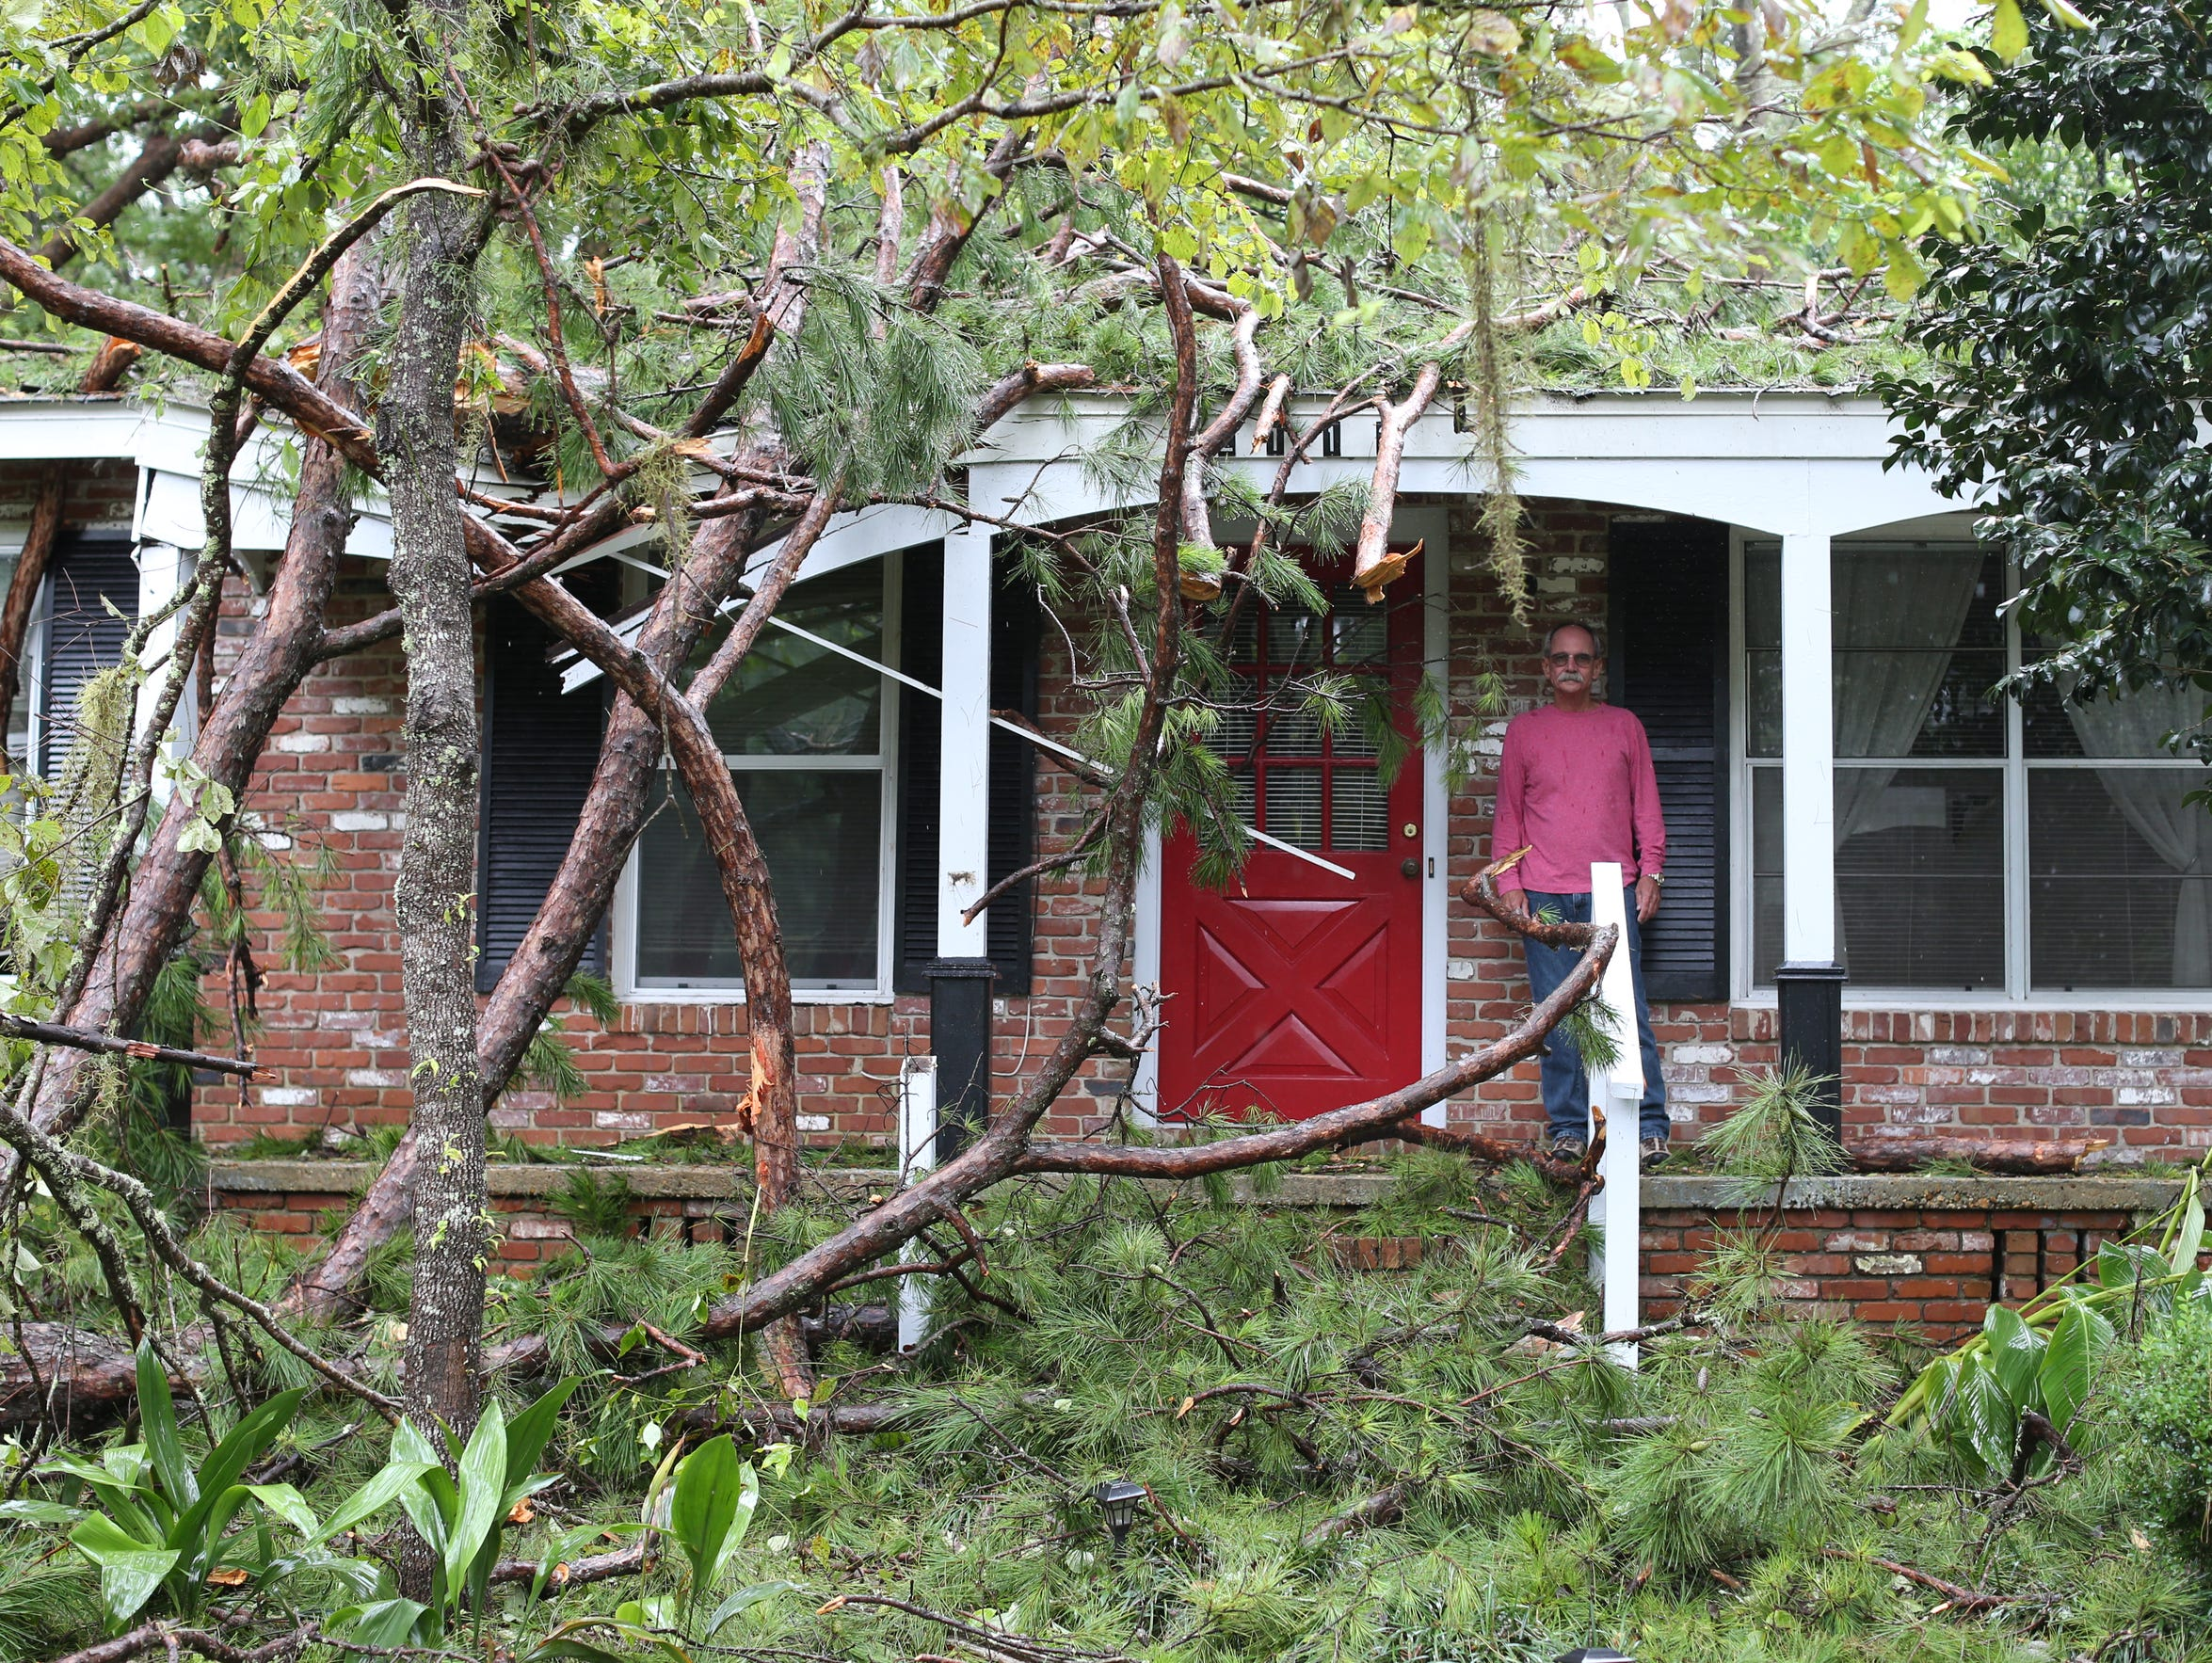 Steve Donelan stands on the porch of his Mahan Road home Sep 11 after Irma brought a pine tree crashing into his roof.